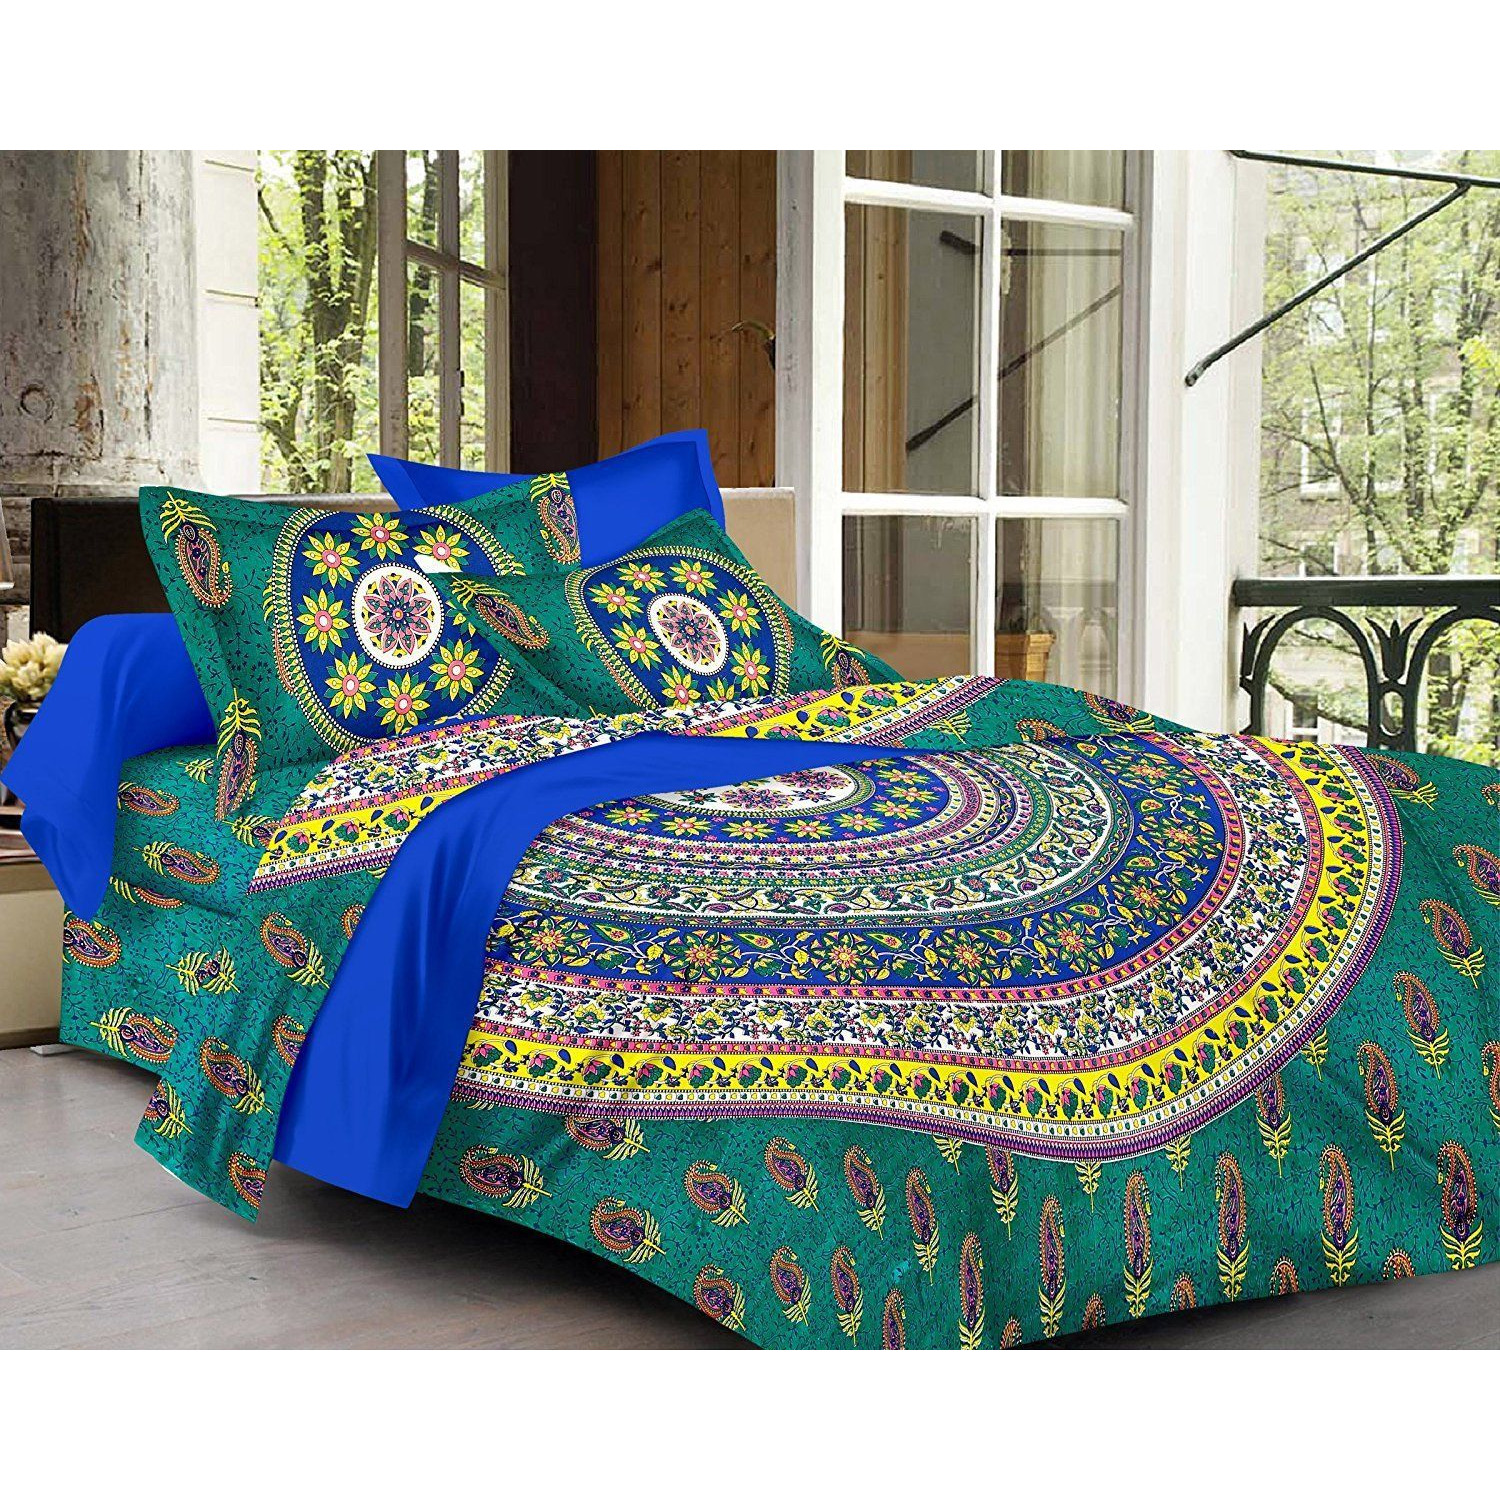 size bedding of black fashionable blanket sleep queen bed comforter cheap lostcoastshuttle well for sets image